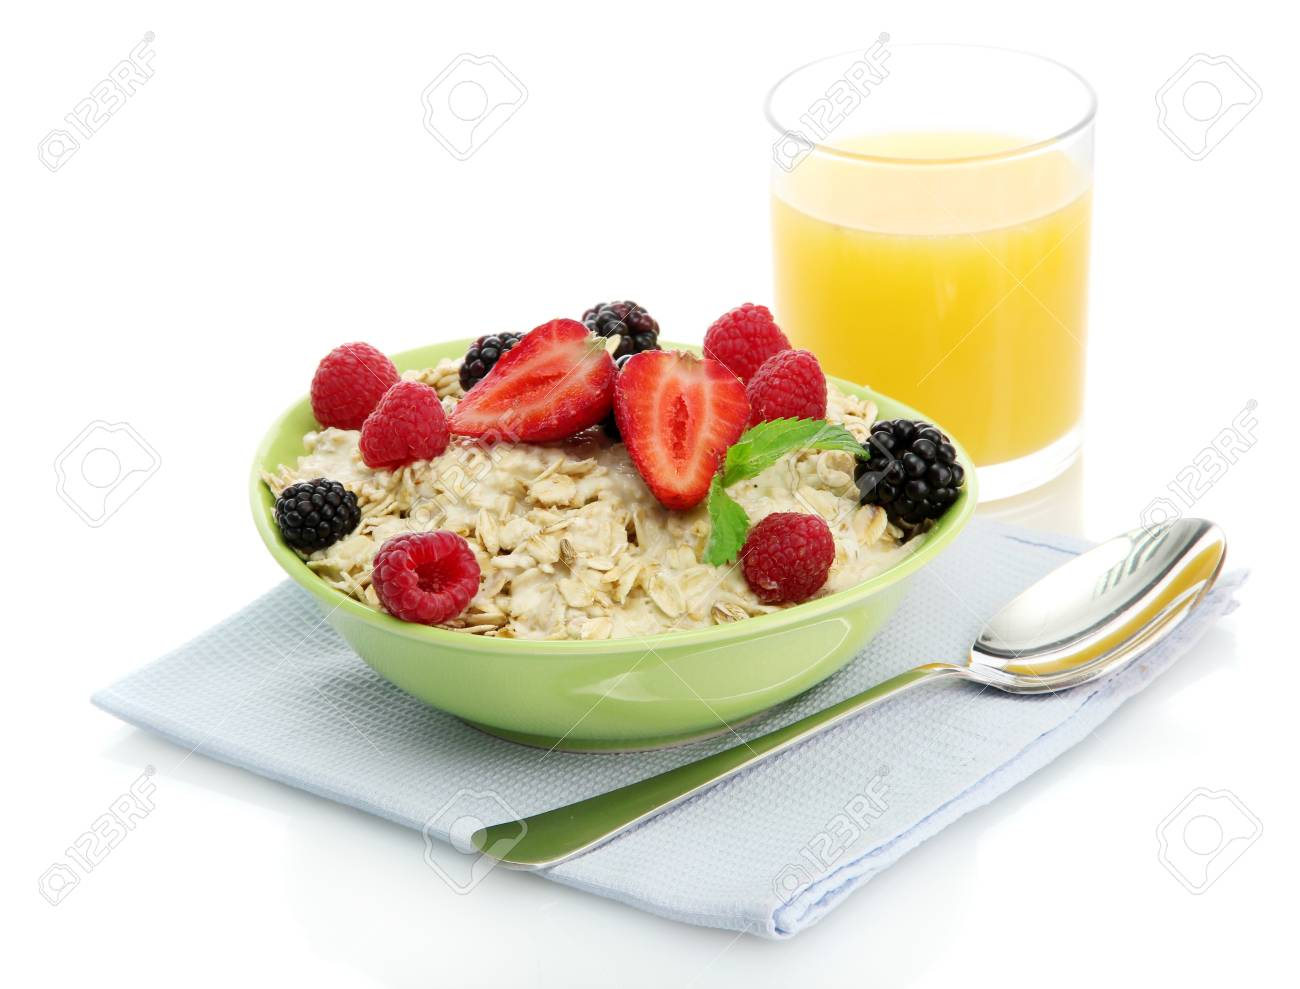 tasty oatmeal with berries and glass of juice, isolated on white Stock Photo - 15853267